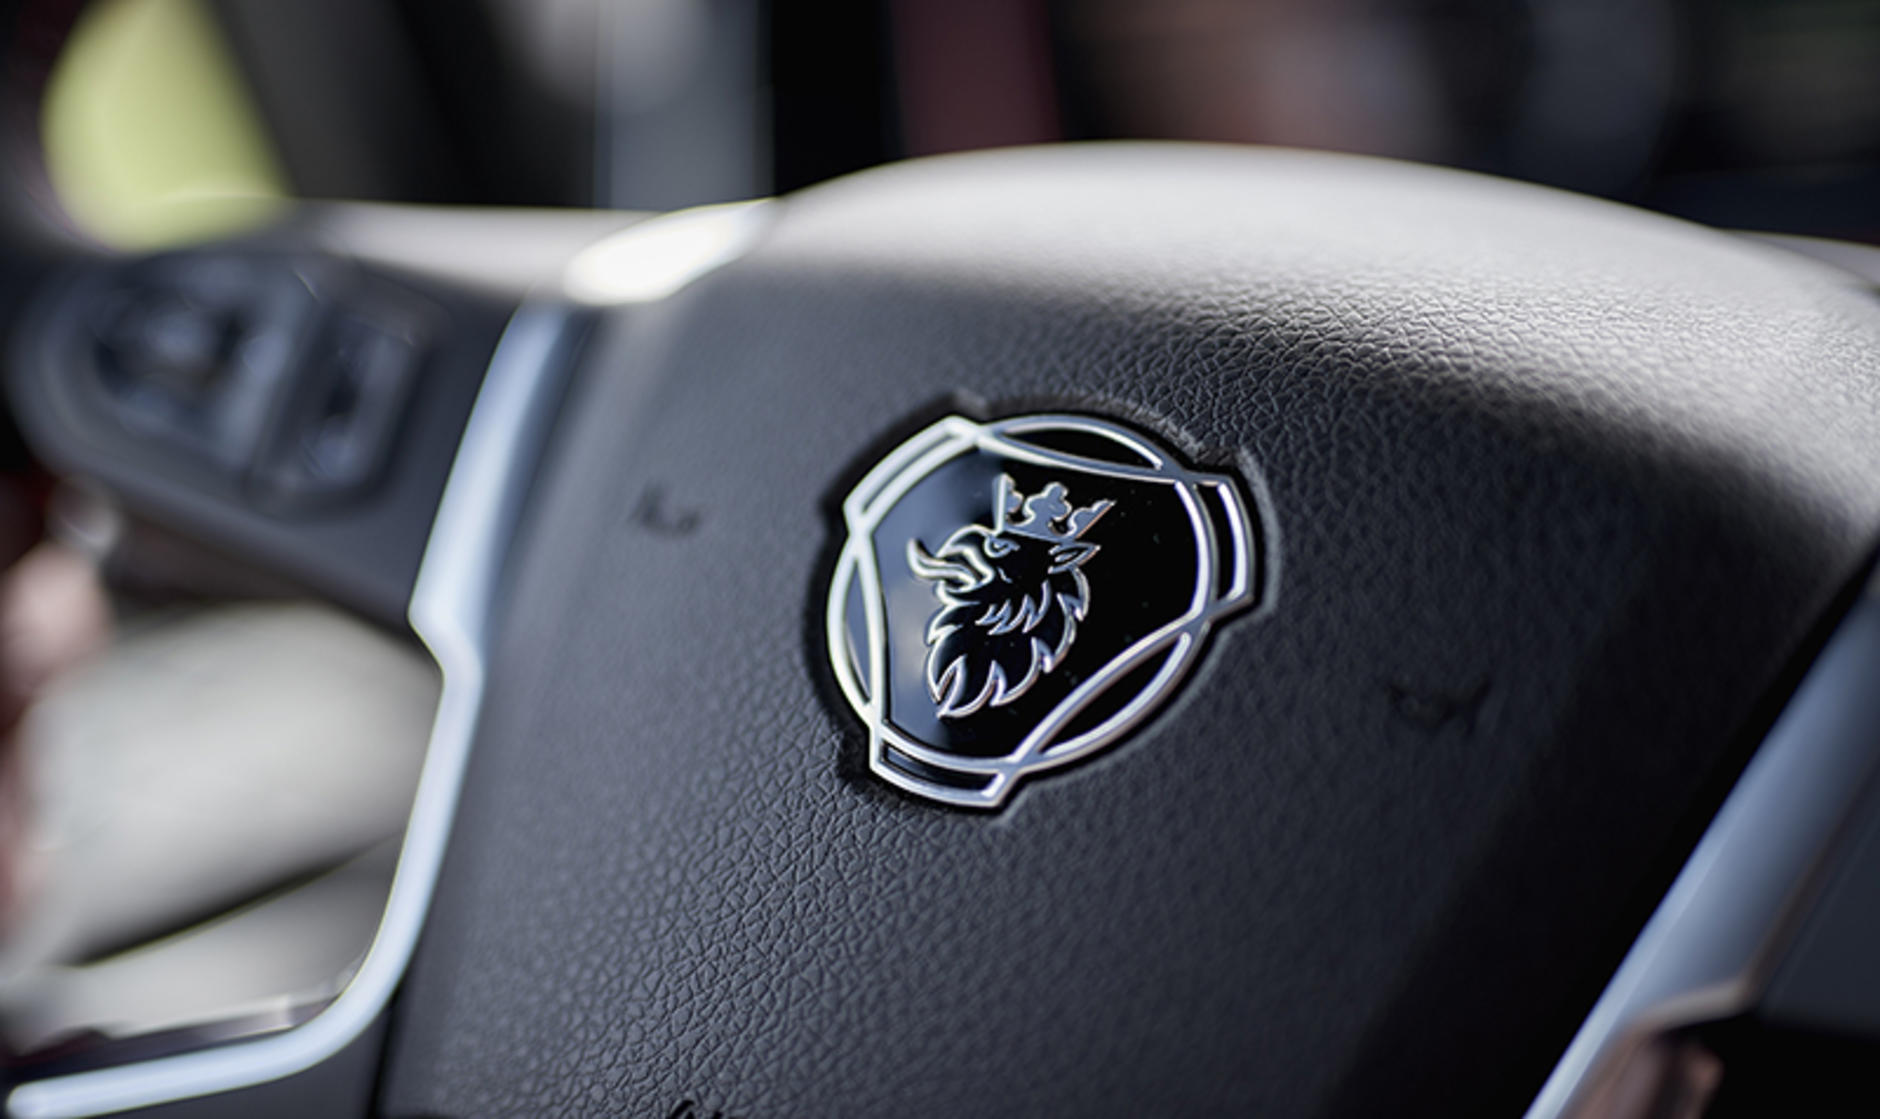 Scania Griffin badge